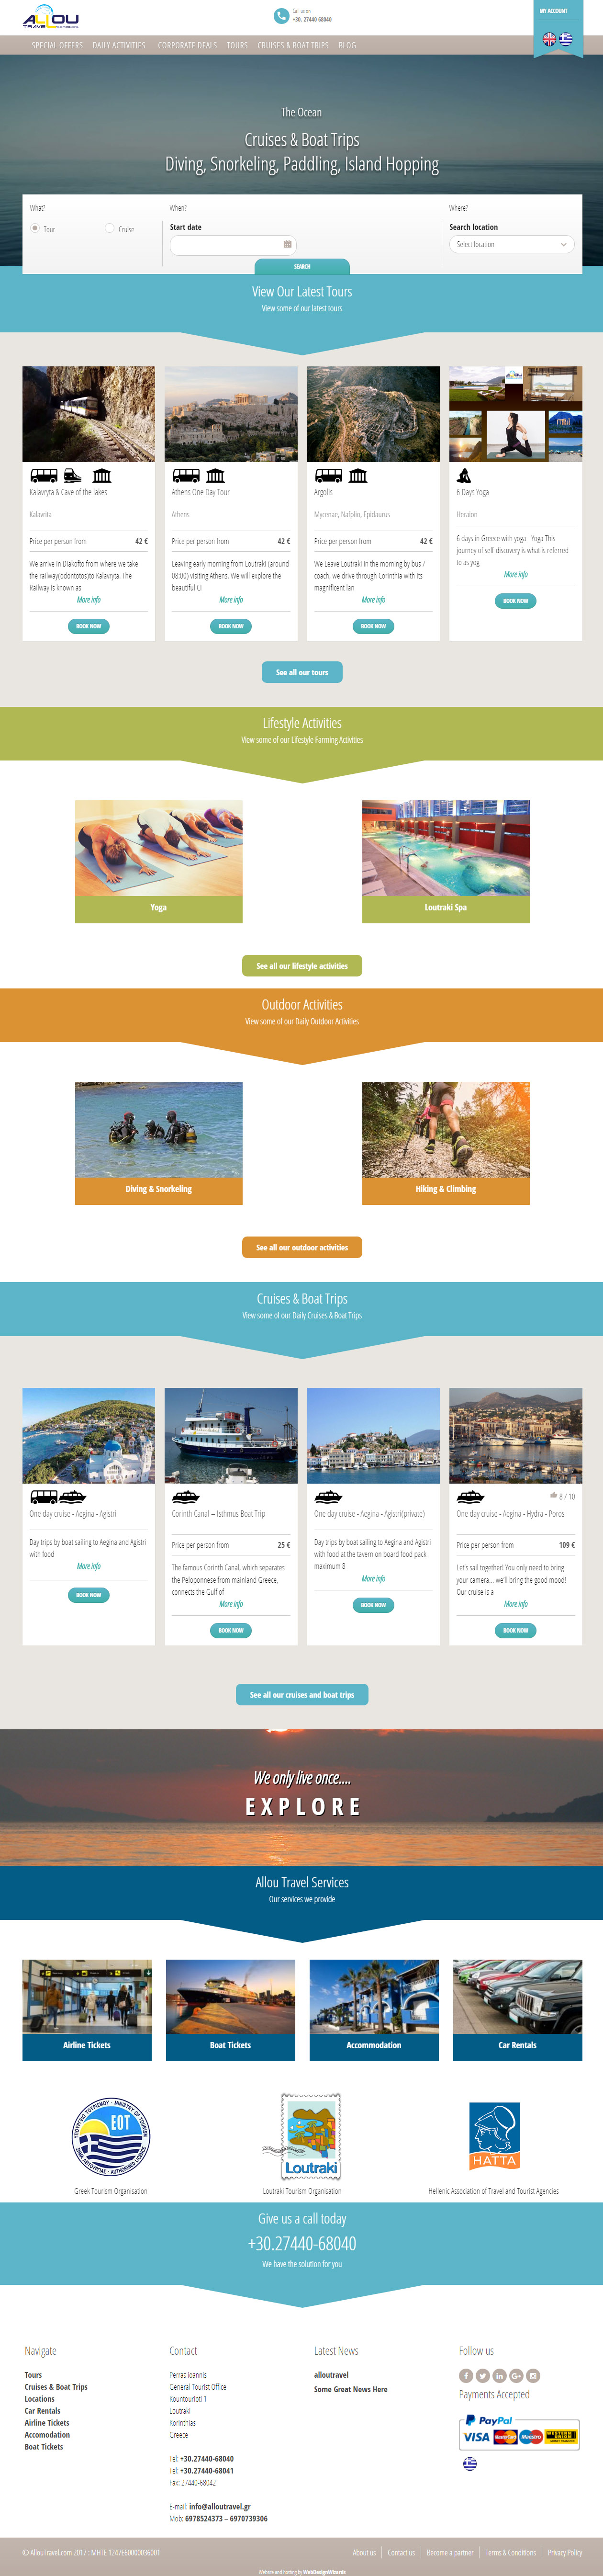 allou travel screenshot website